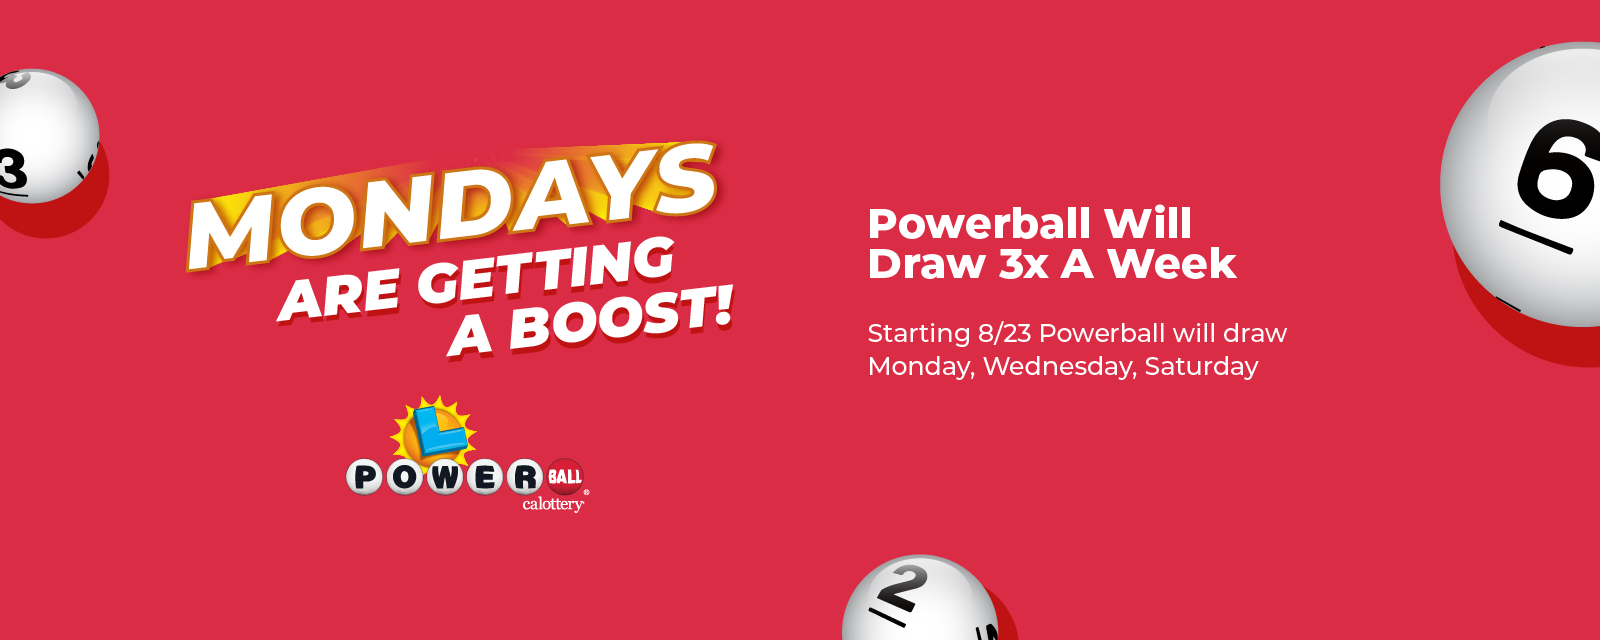 powerball is getting a boost. New Monday draw starting august 23